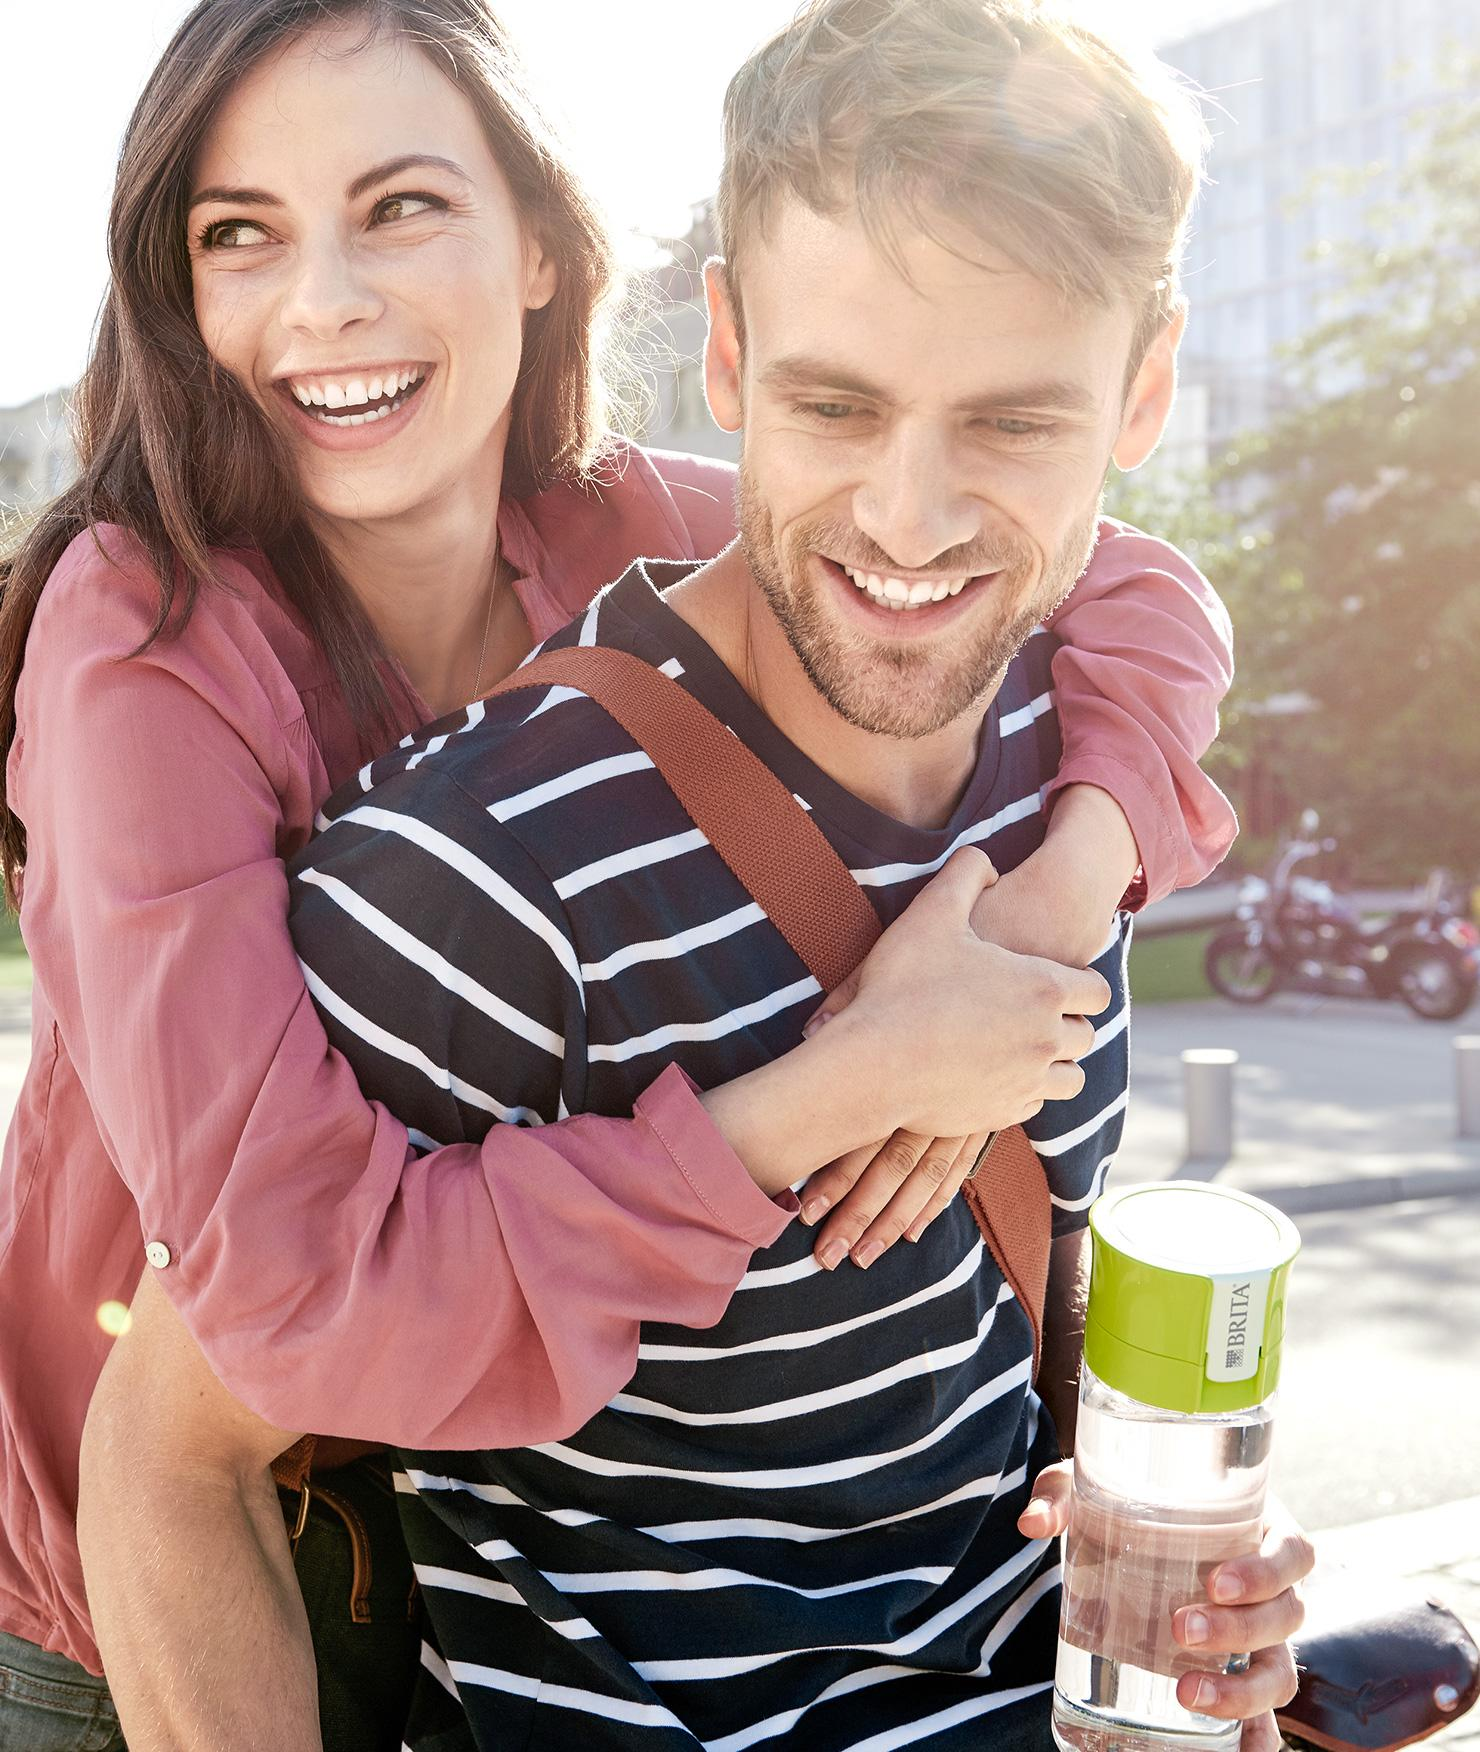 BRITA fill&go Vital lime city couple